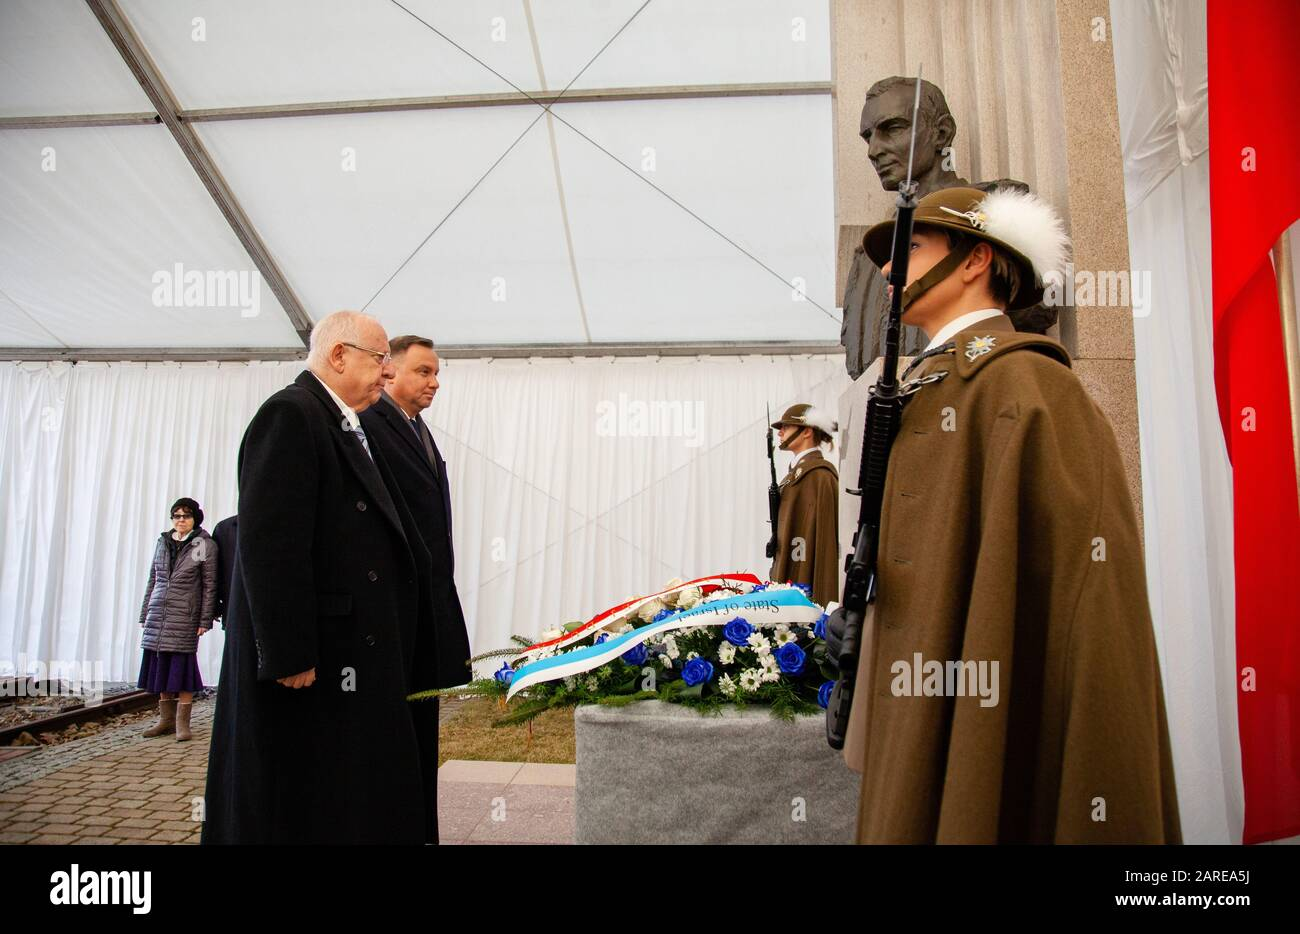 Oswiecim, Poland. 27th Jan, 2020. President of the Republic of Poland Andrzej Duda and the President of Israel Reuwen Riwlin lay flowers at the Monument of Captain Witold Pilecki during the 75th anniversary of the liberation of KL Auschwitz-Birkenau. Credit: SOPA Images Limited/Alamy Live News Stock Photo